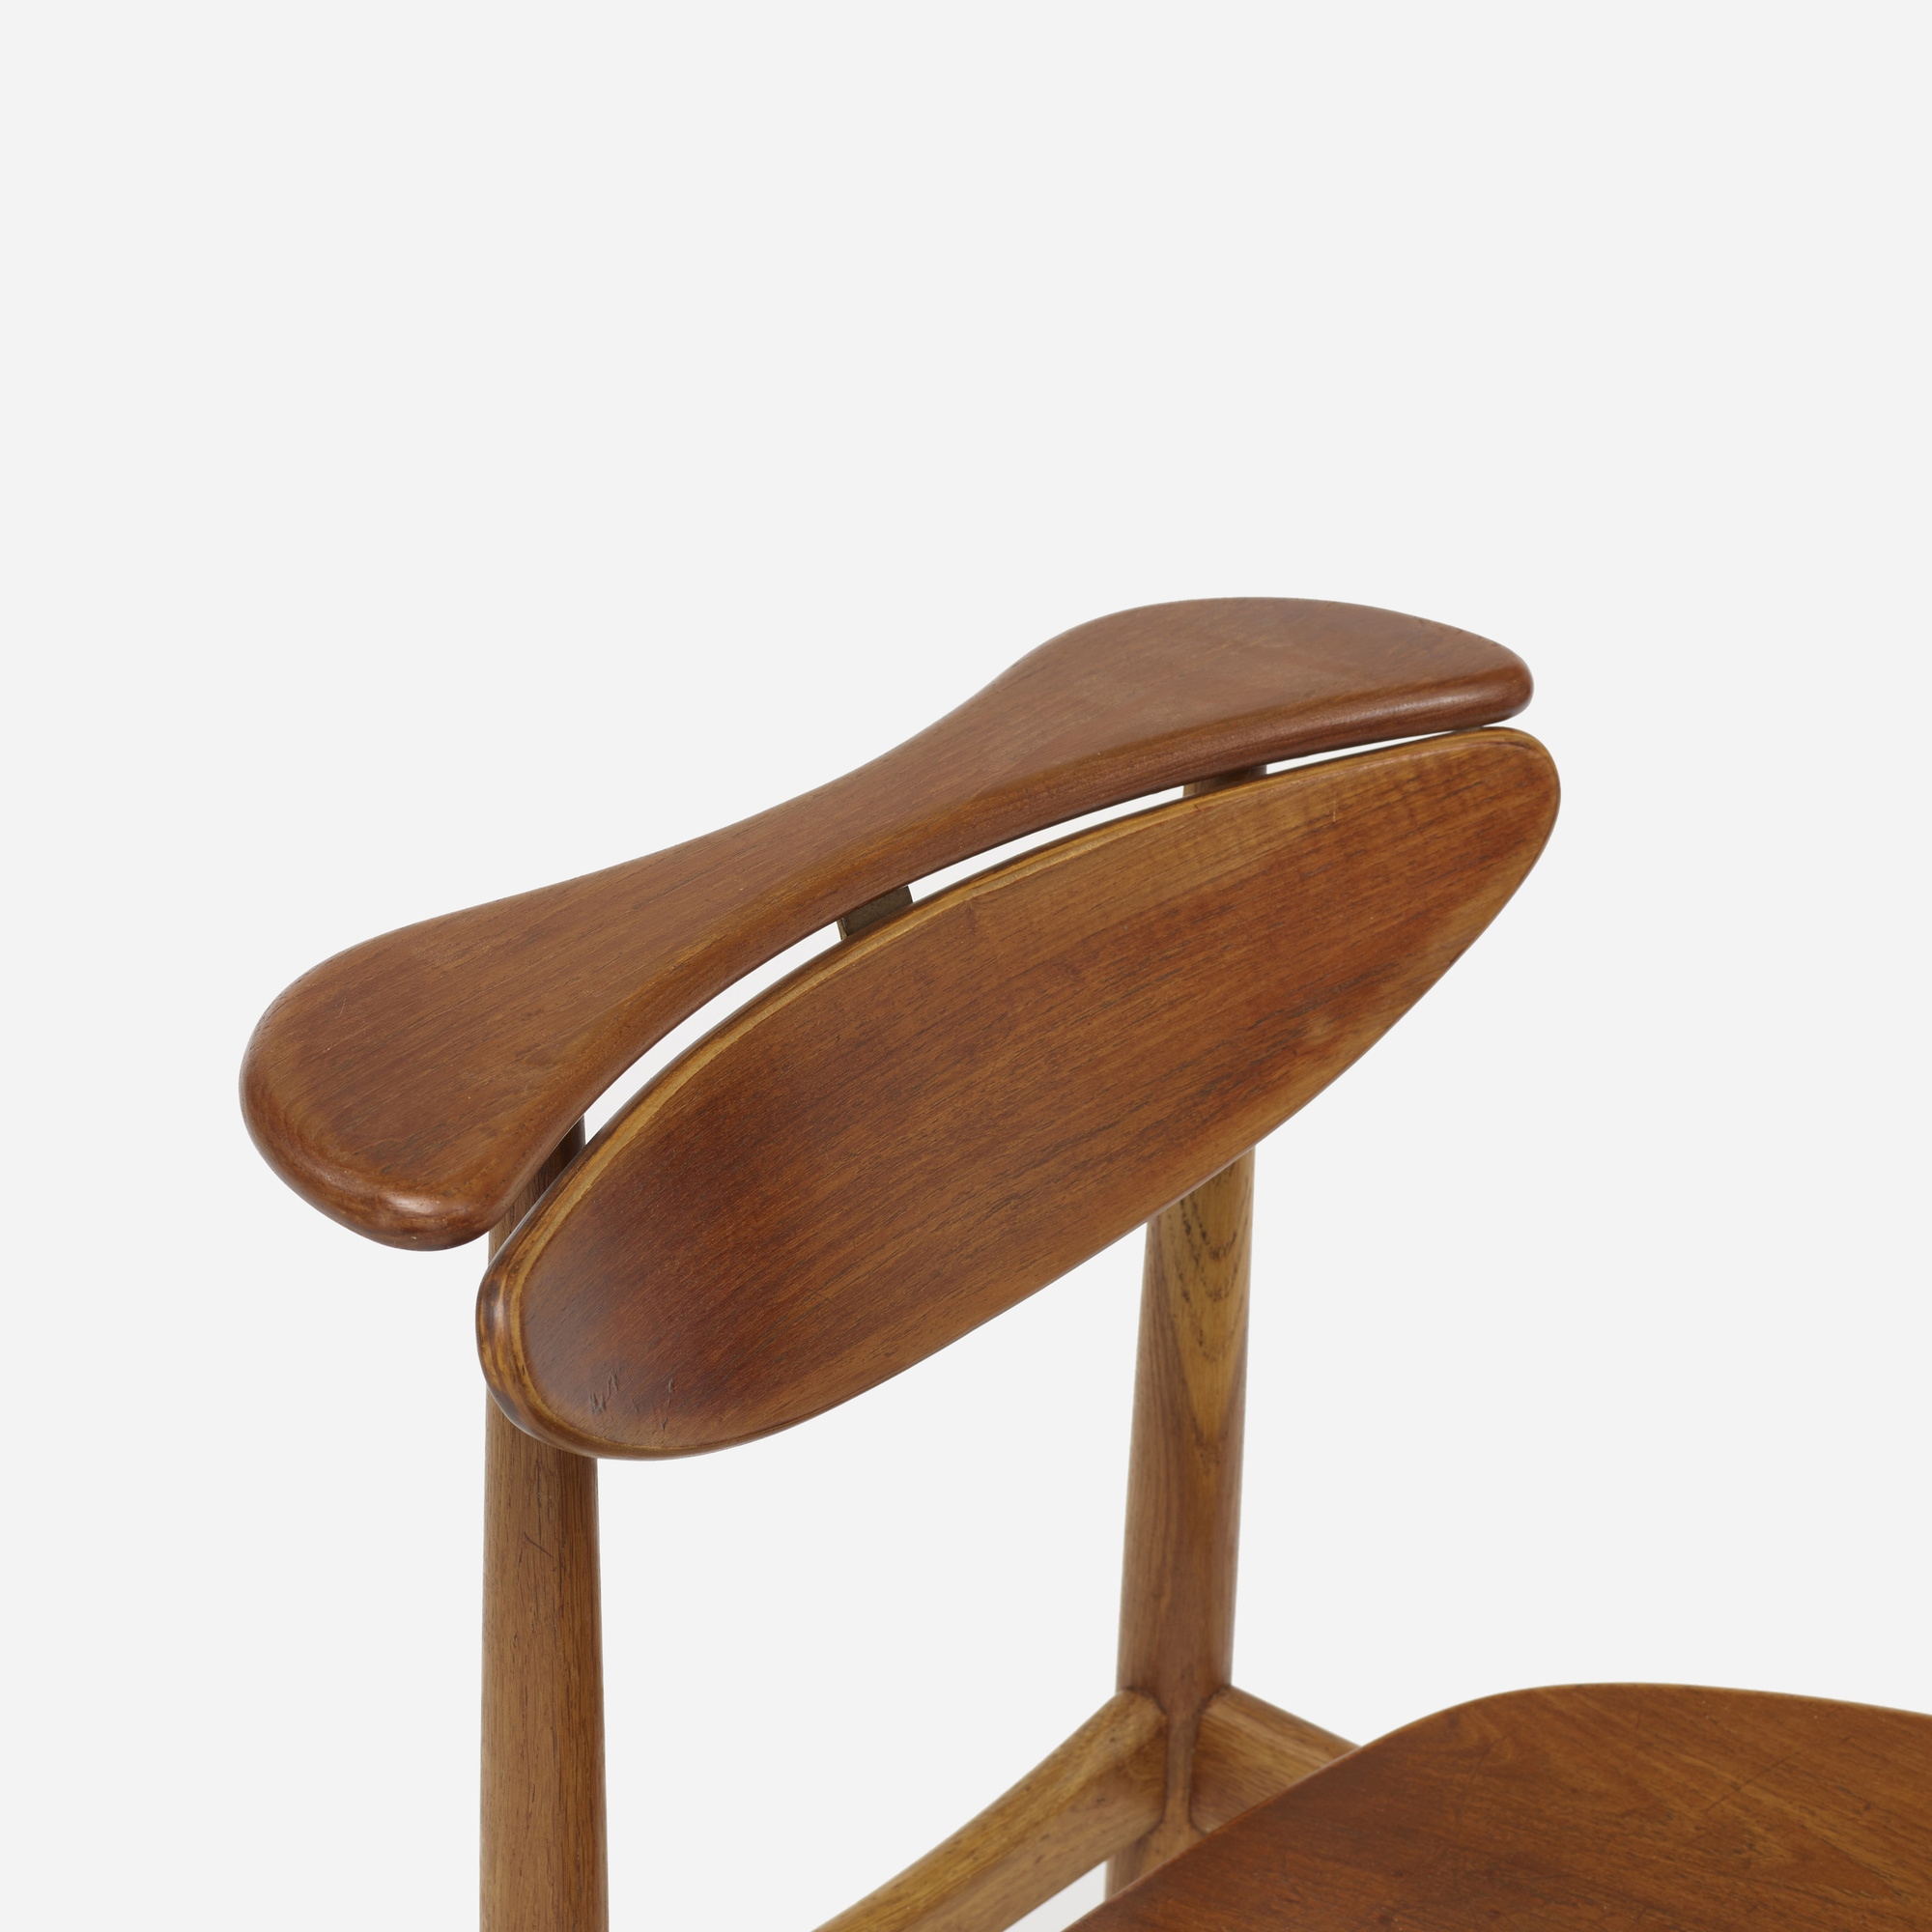 115: Finn Juhl / dining chairs, pair (3 of 4)